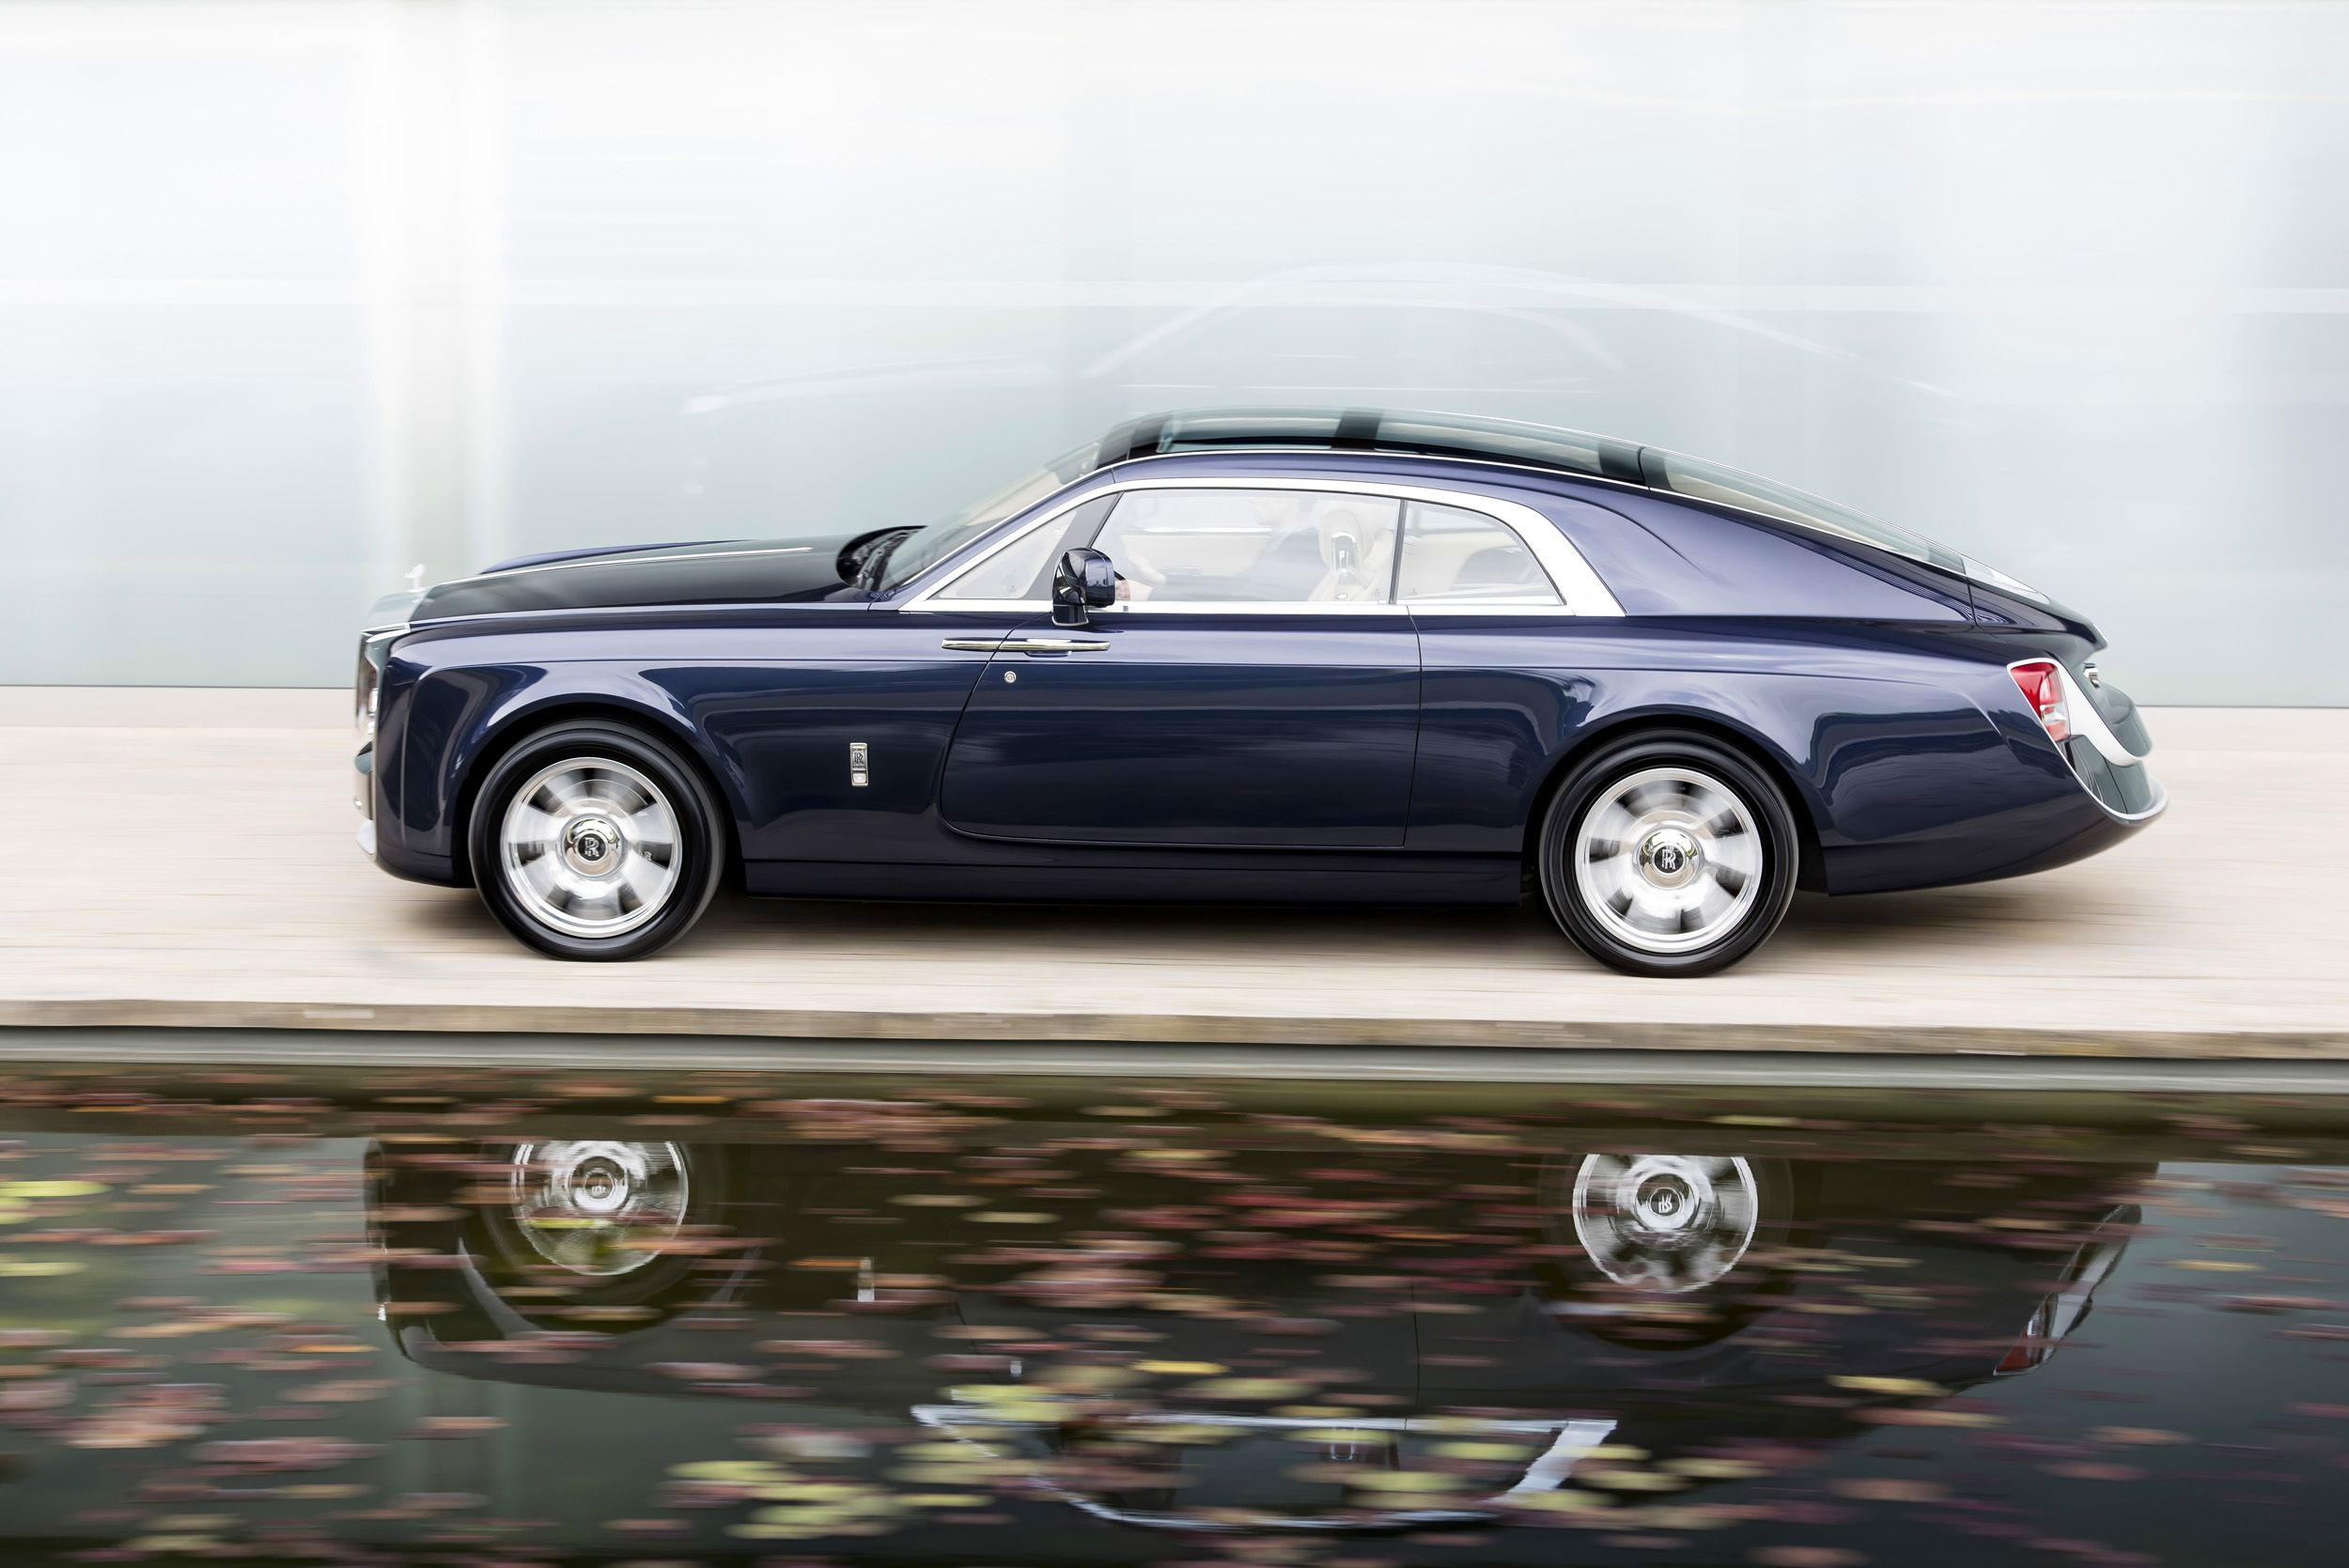 ROLLS-ROYCE 'SWEPTAIL' - THE REALISATION OF ONE CUSTOMER'S COACHBUILT DREAM